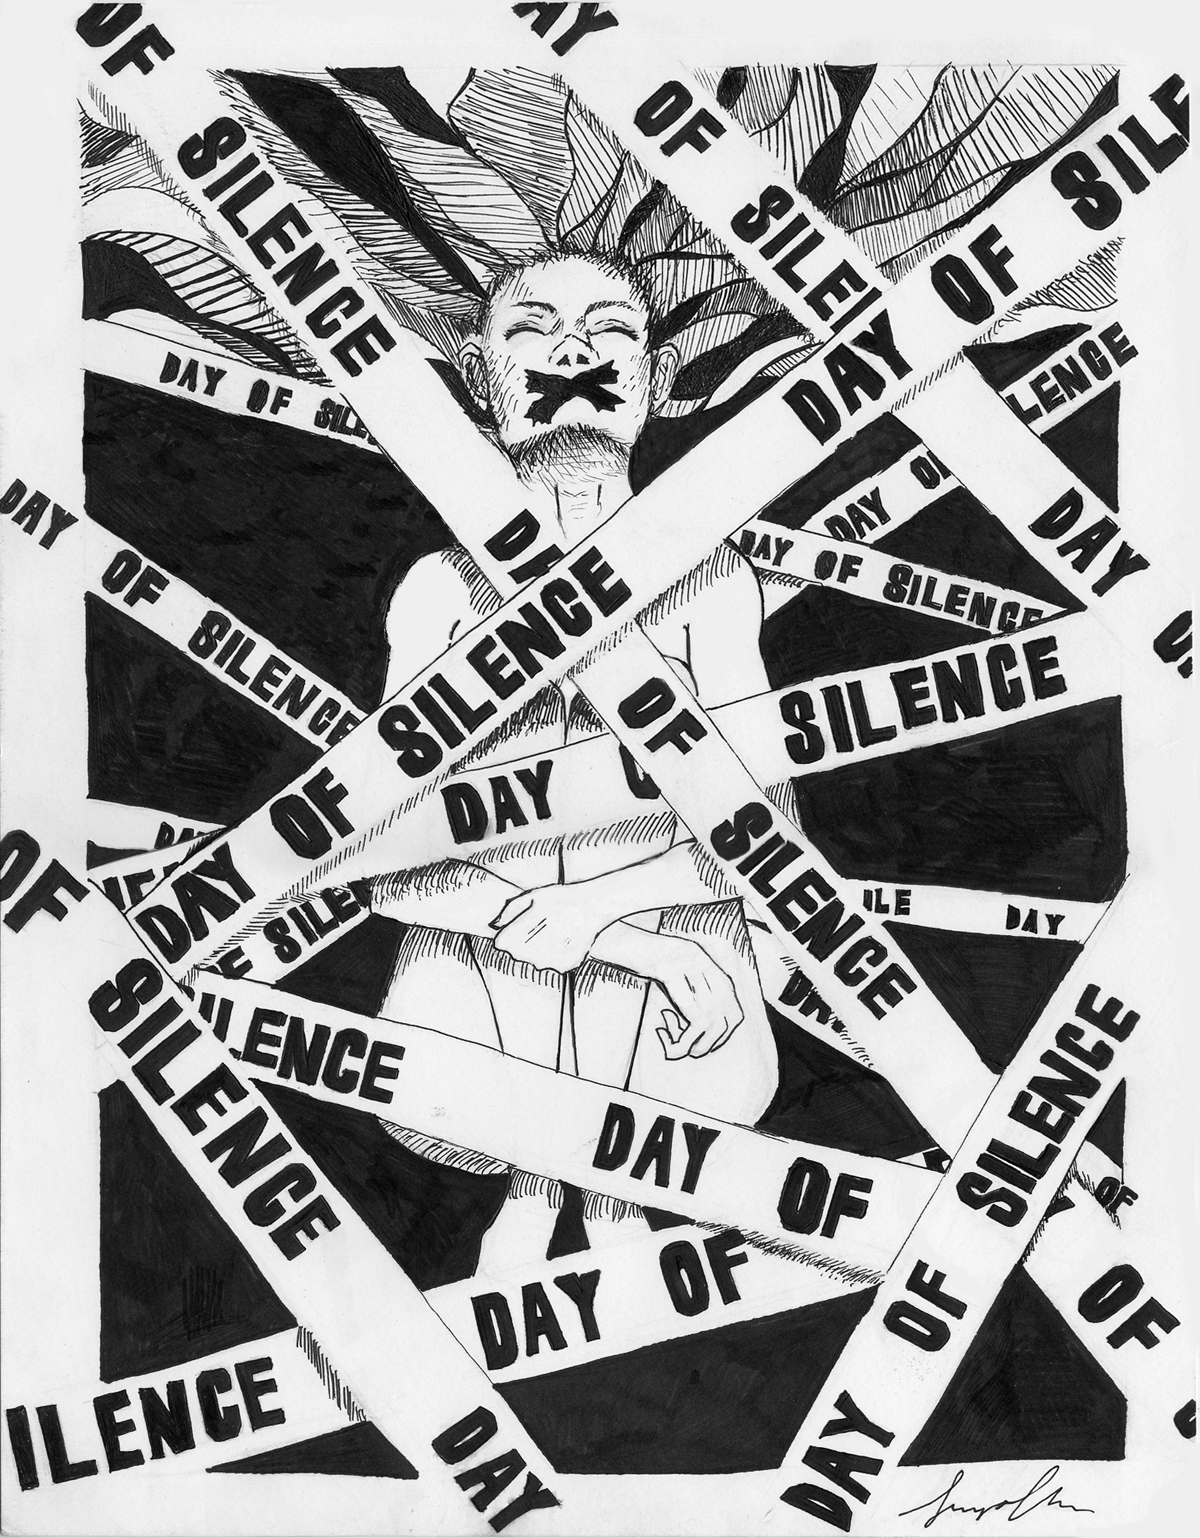 Day Of Silence by Soy-lips